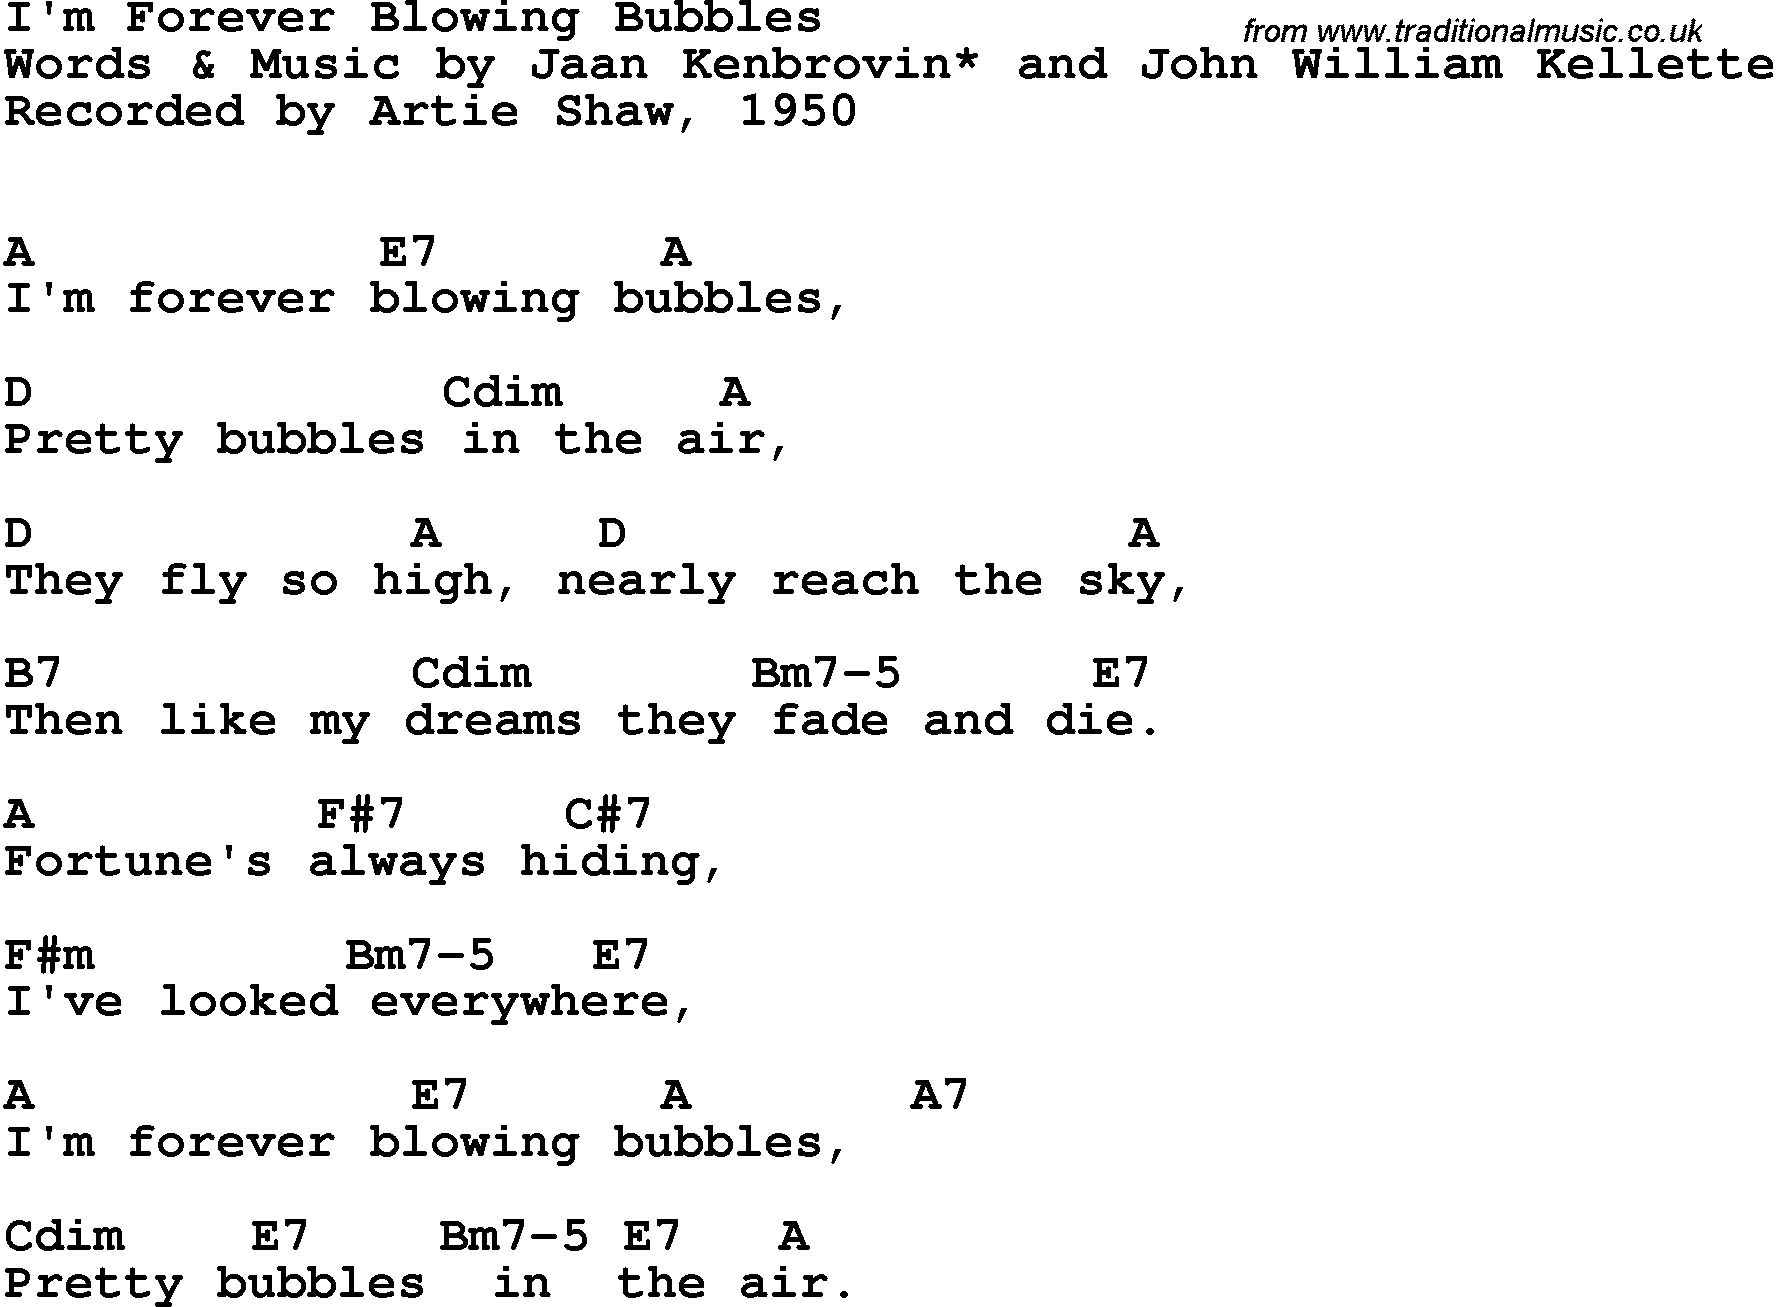 Song Lyrics With Guitar Chords For Im Forever Blowing Bubbles